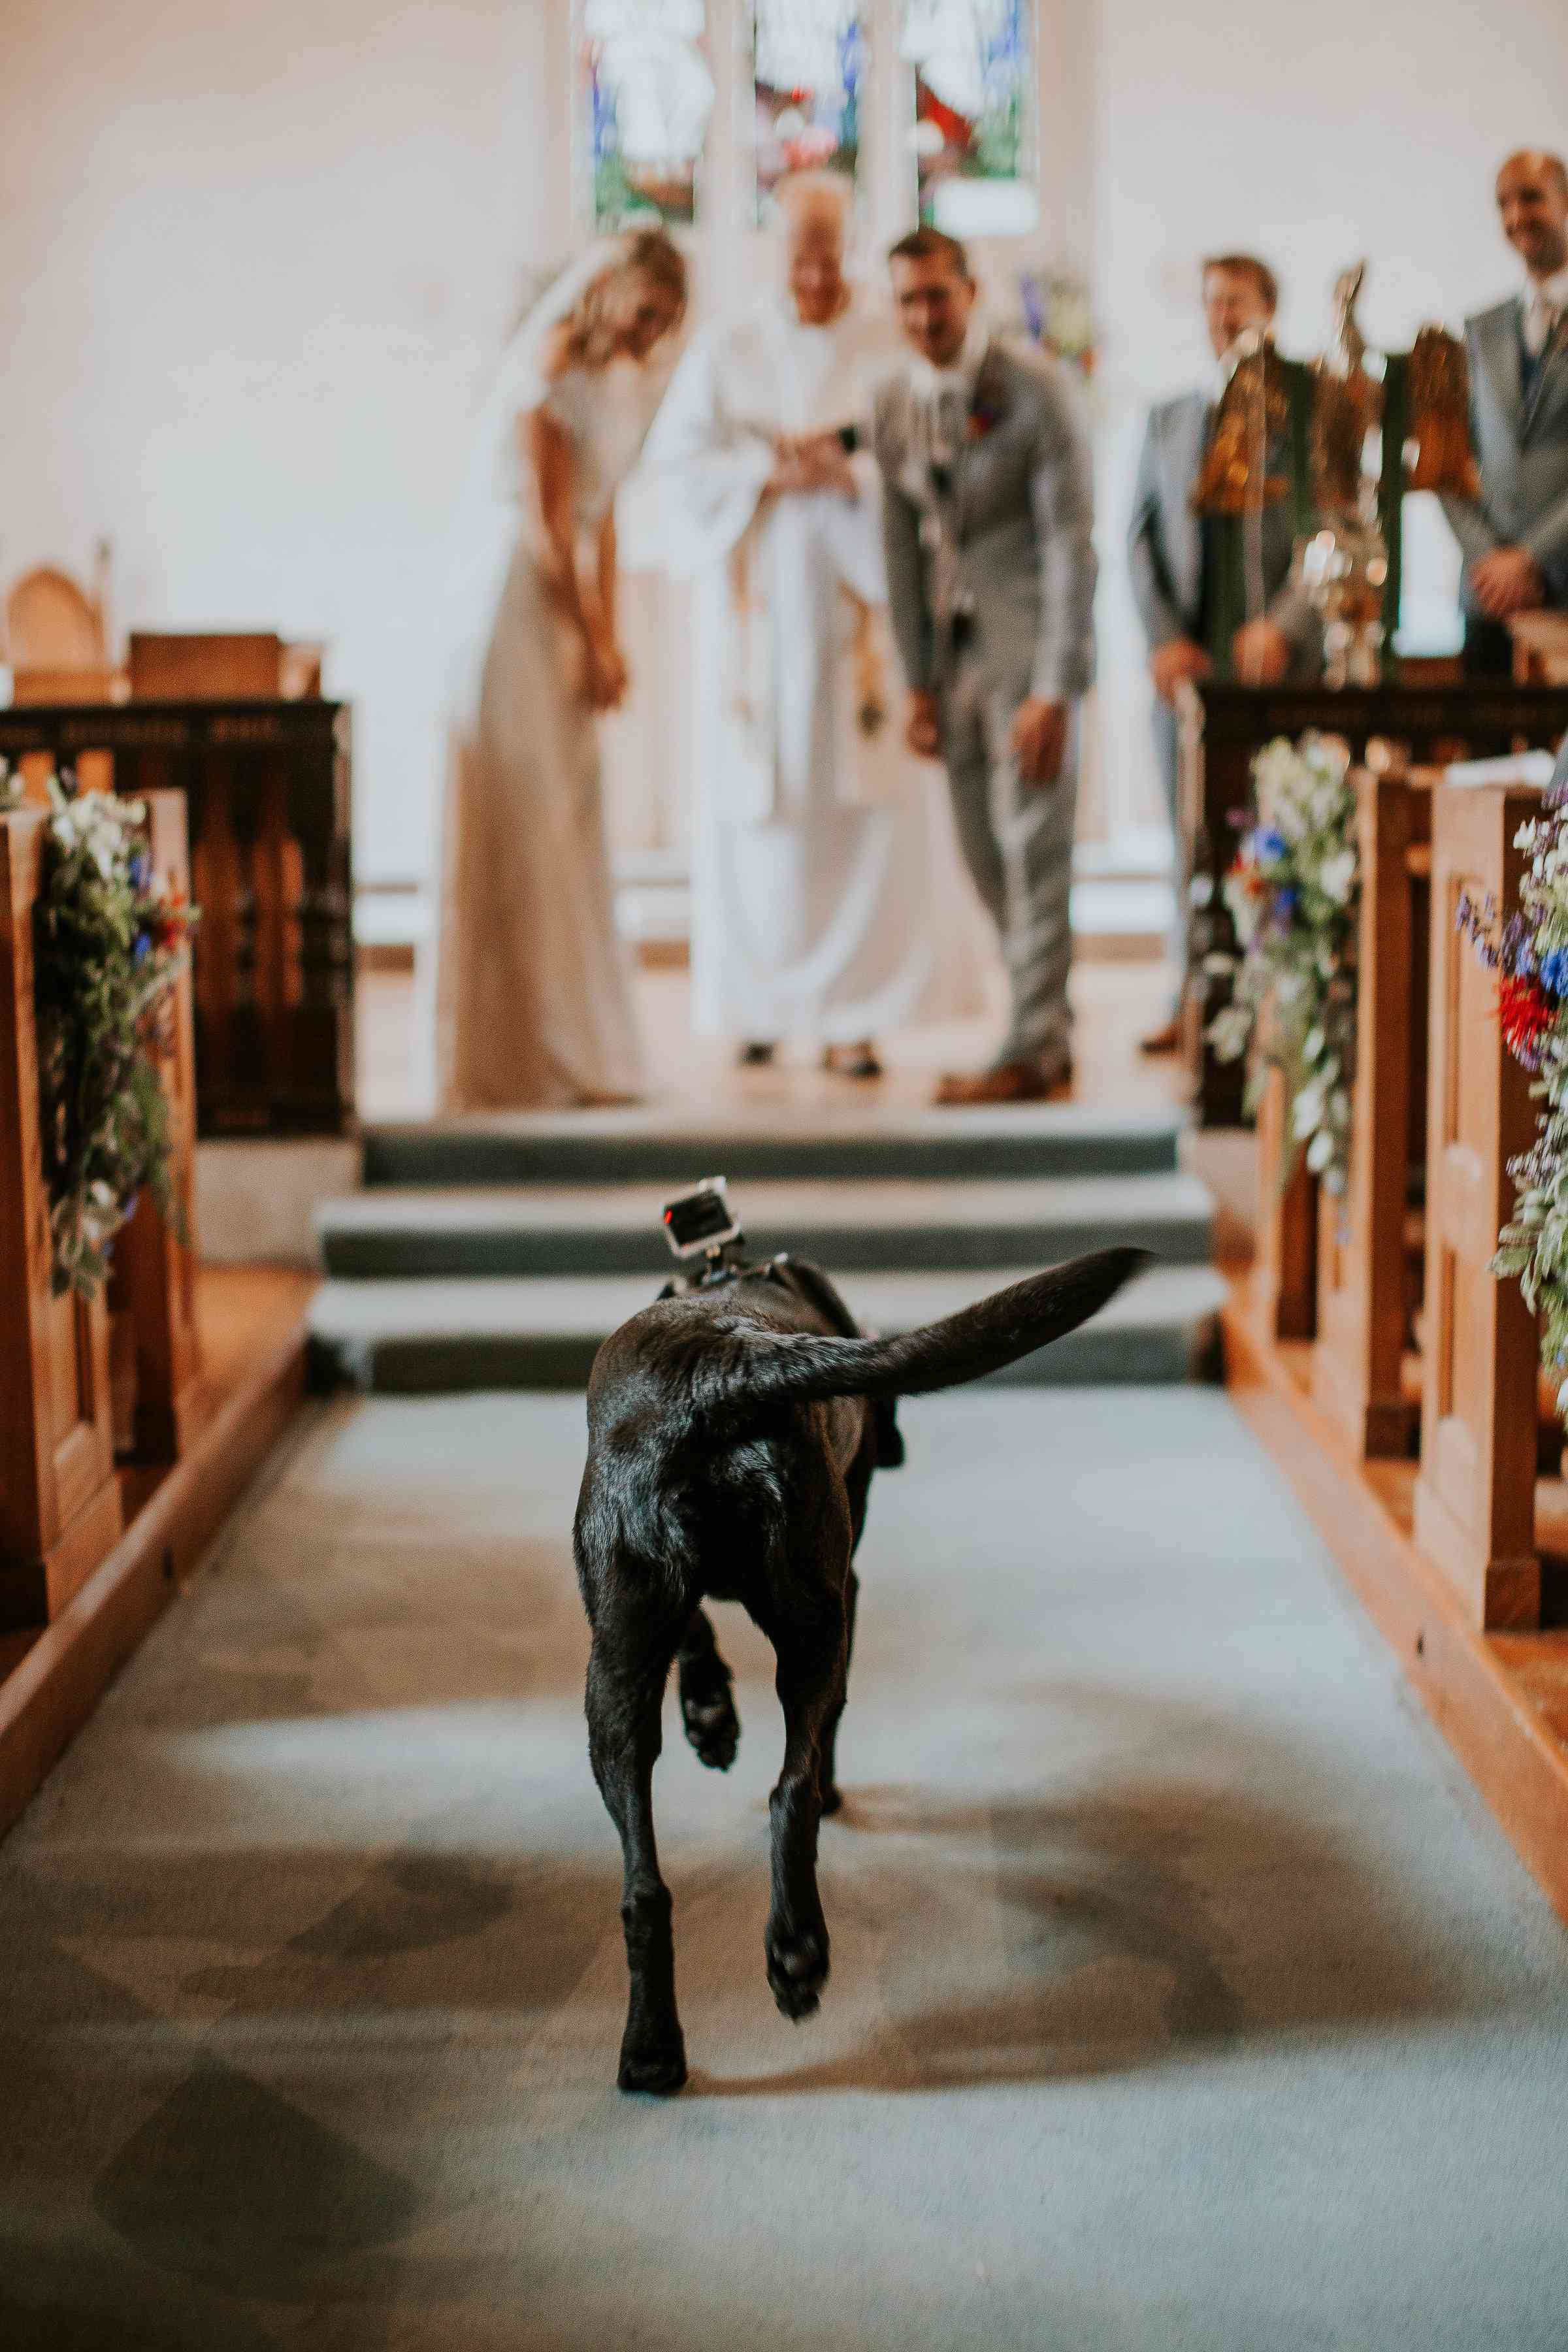 Dog walking down aisle with GoPro